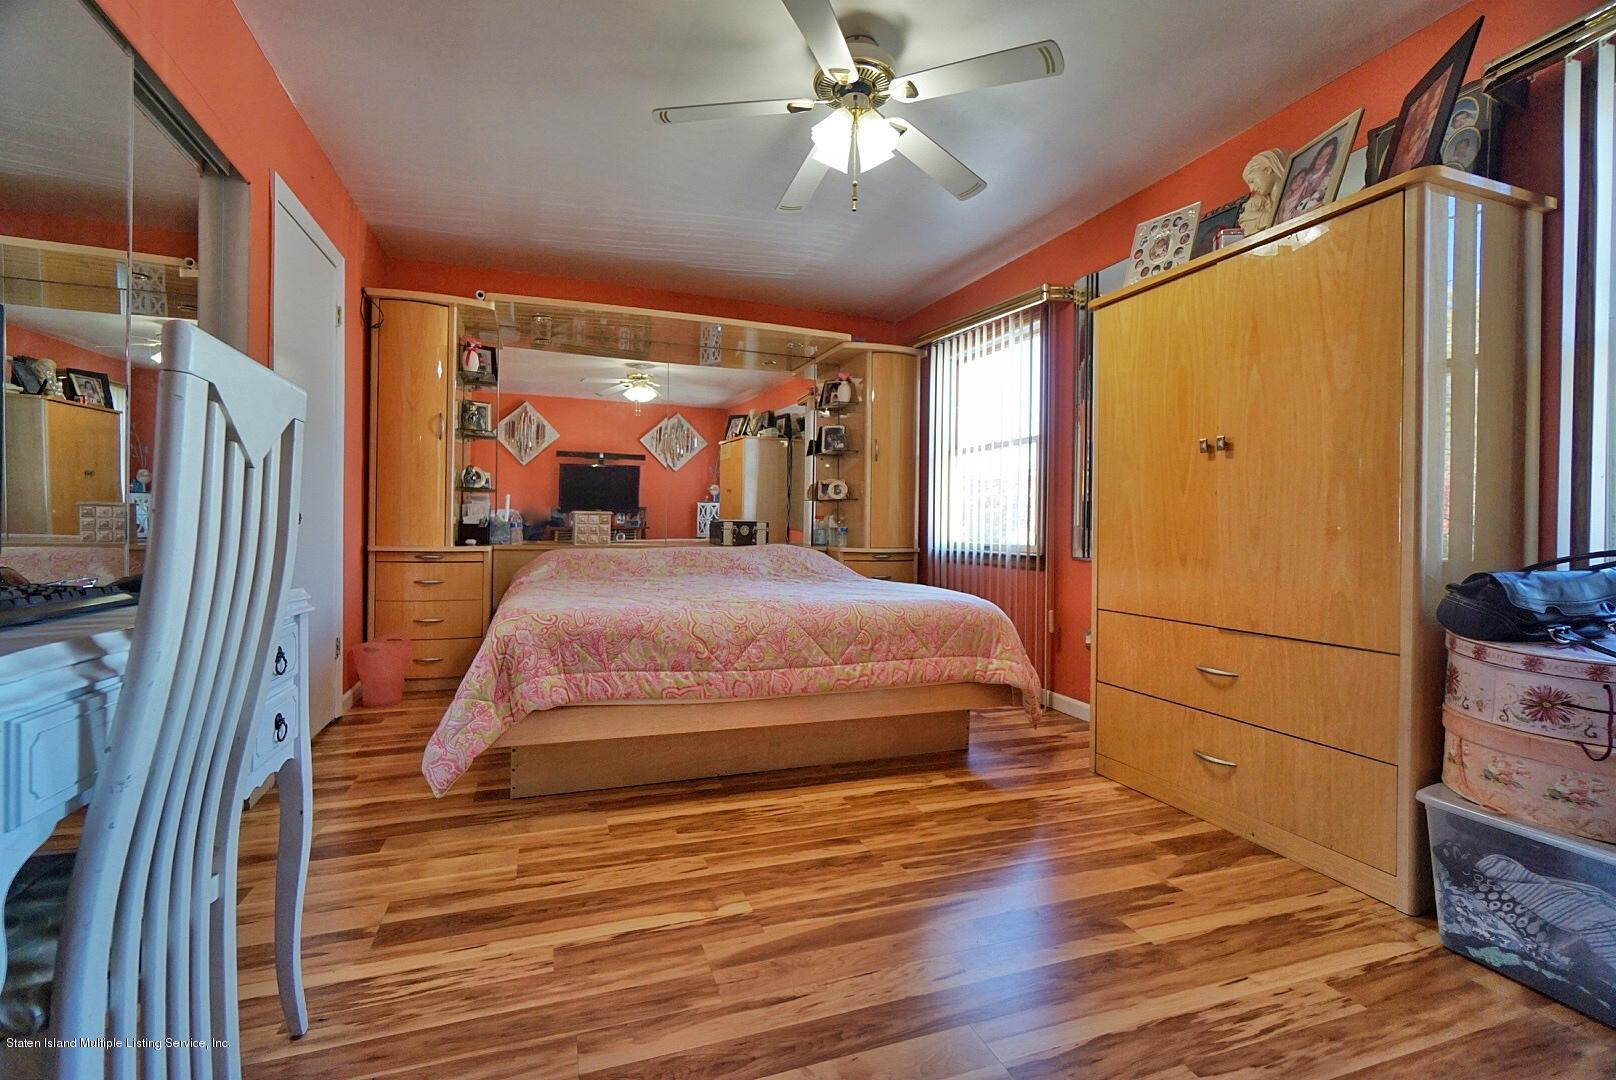 Single Family - Semi-Attached 12 Signs Road  Staten Island, NY 10314, MLS-1123889-10